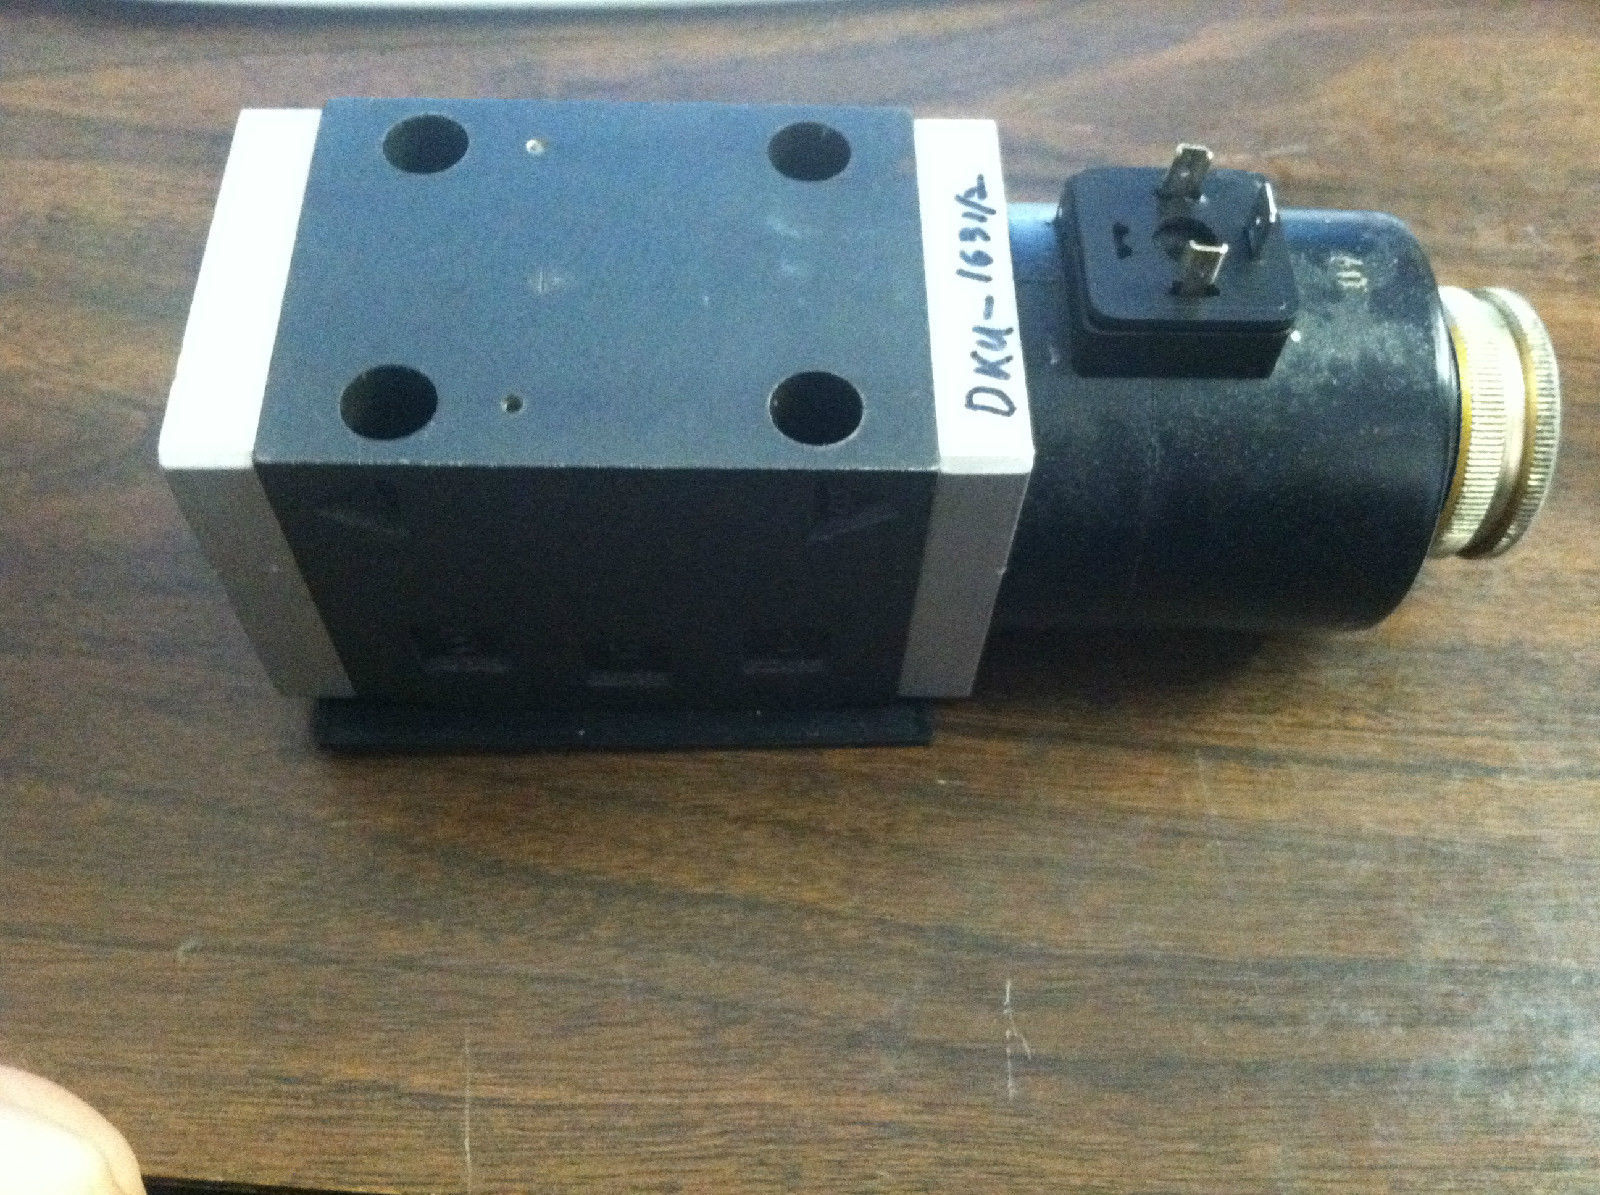 Primary image for DKU 1631/2, Subplate Solenoid Directional Valve